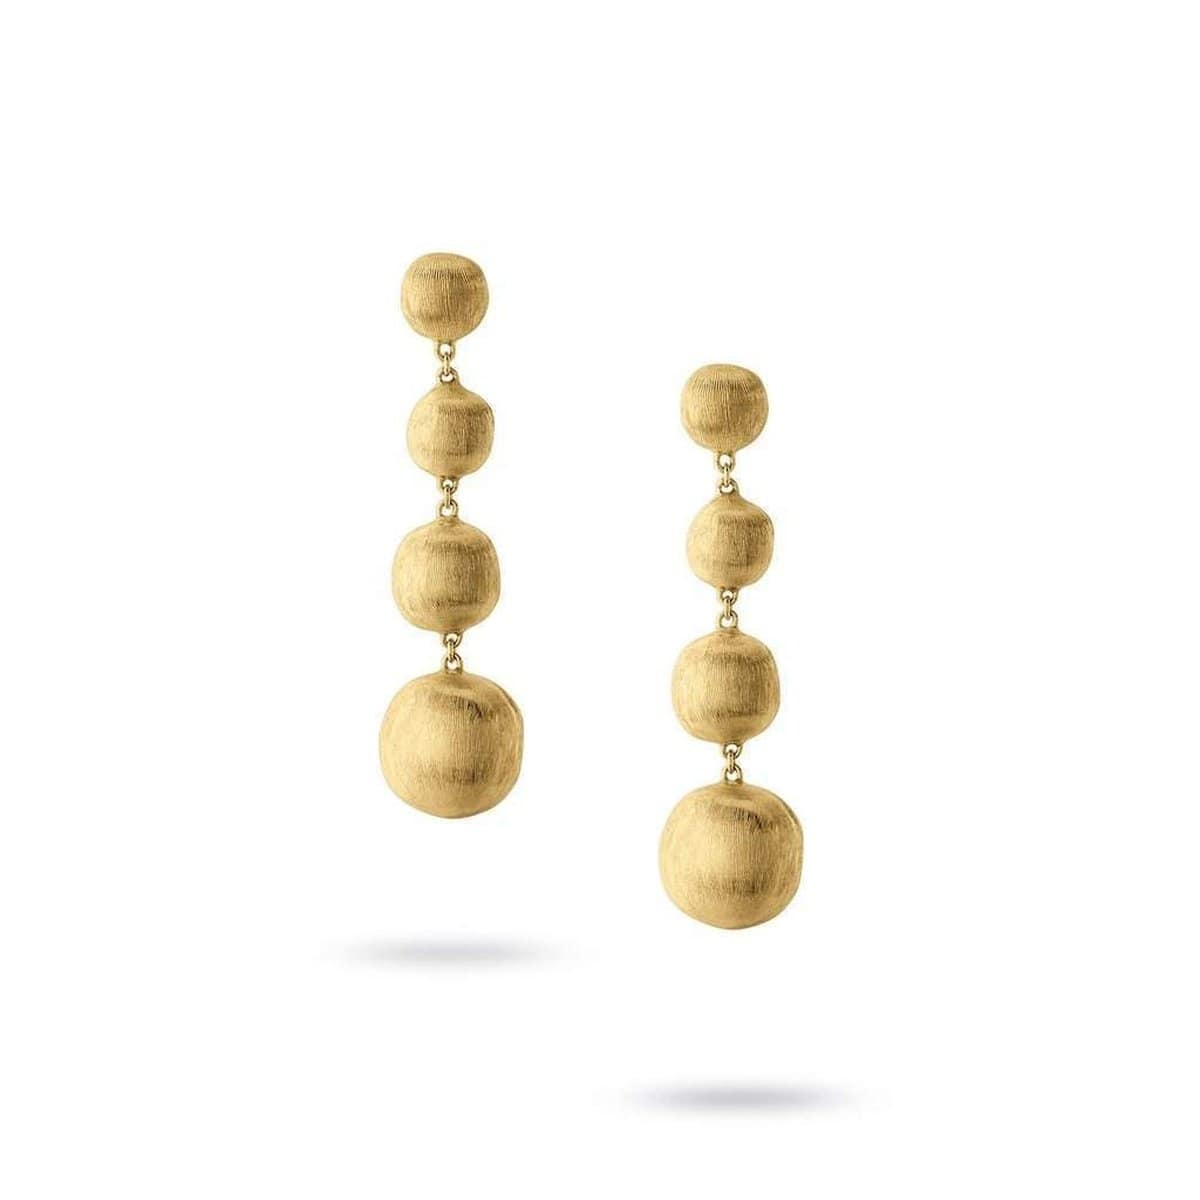 18K Africa Earrings - OB1157 Y